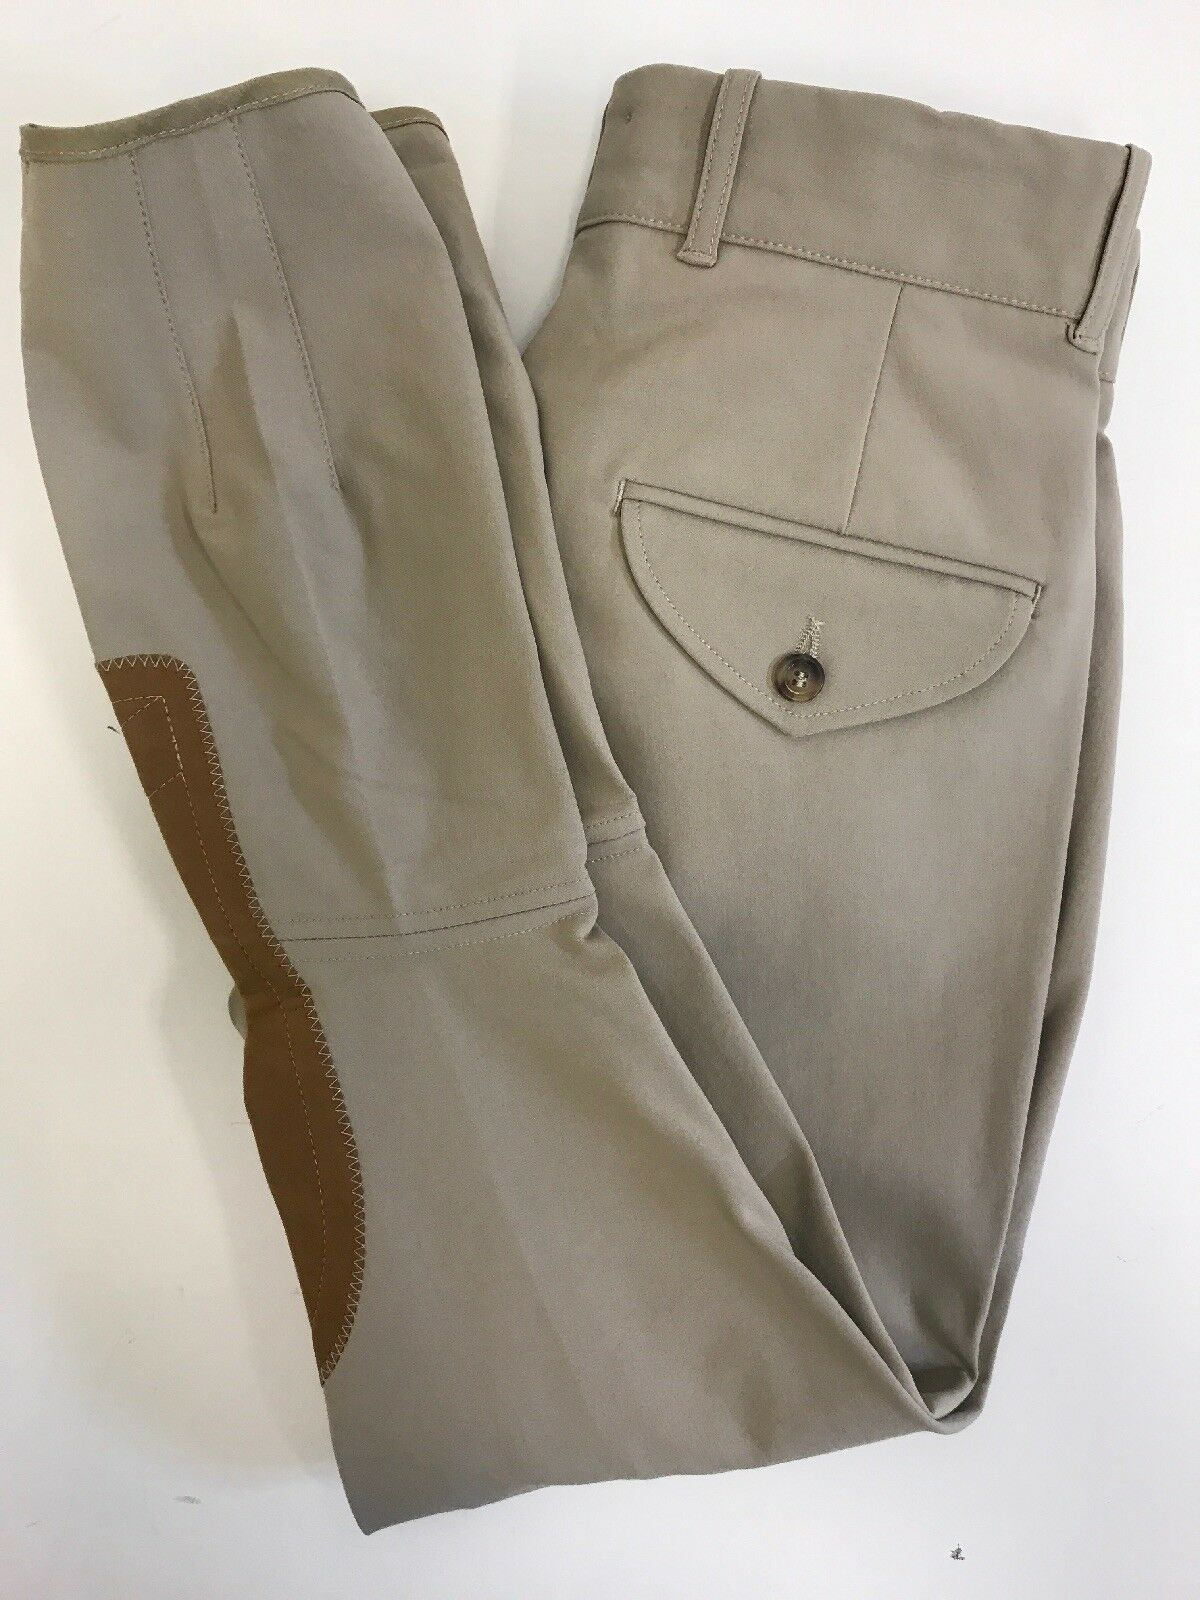 Tailored Sportsman TS Men's Tan Knee Patch Breeches Made in USA NWT